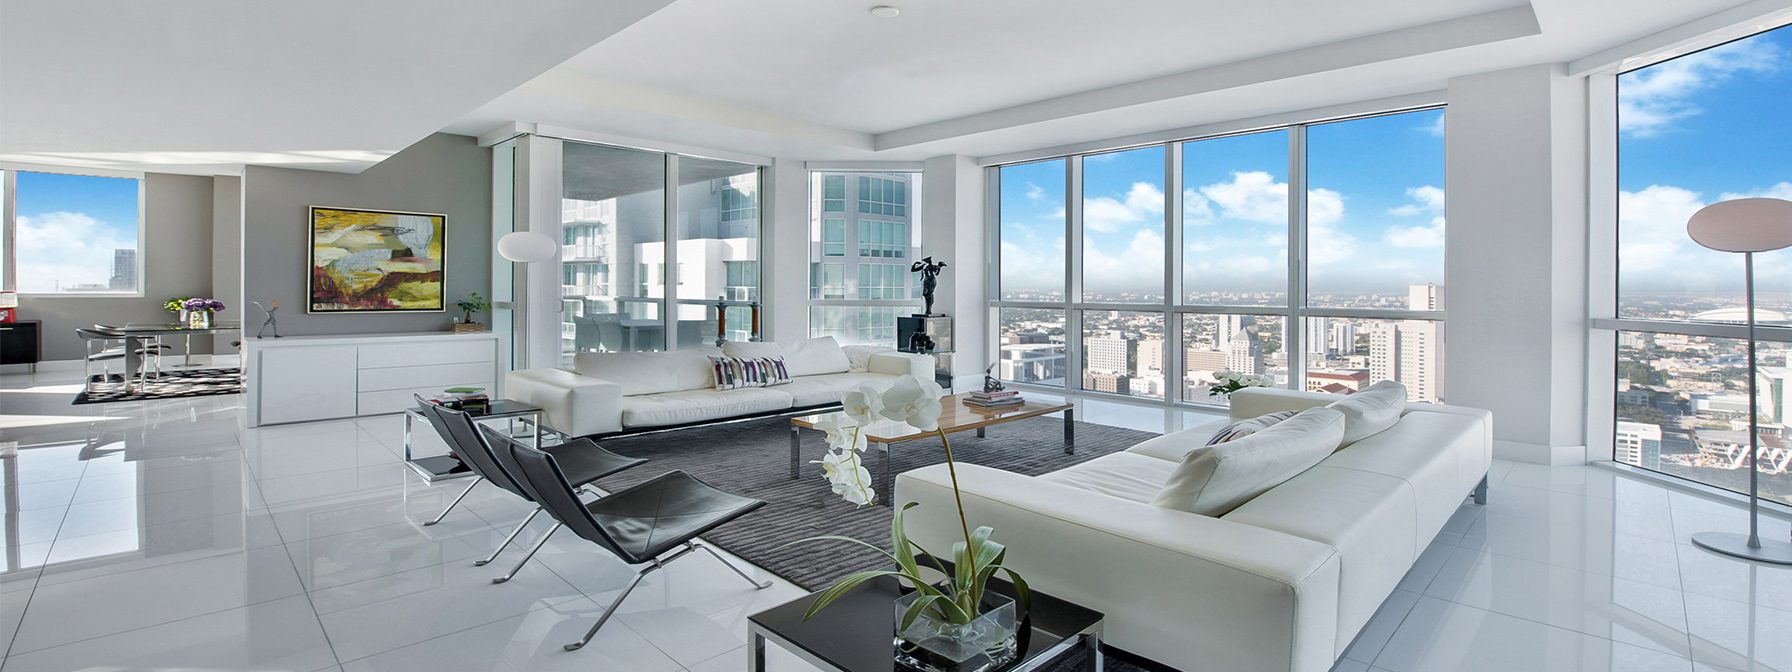 Vizcayne Penthouse 4908 in Downtown Miami